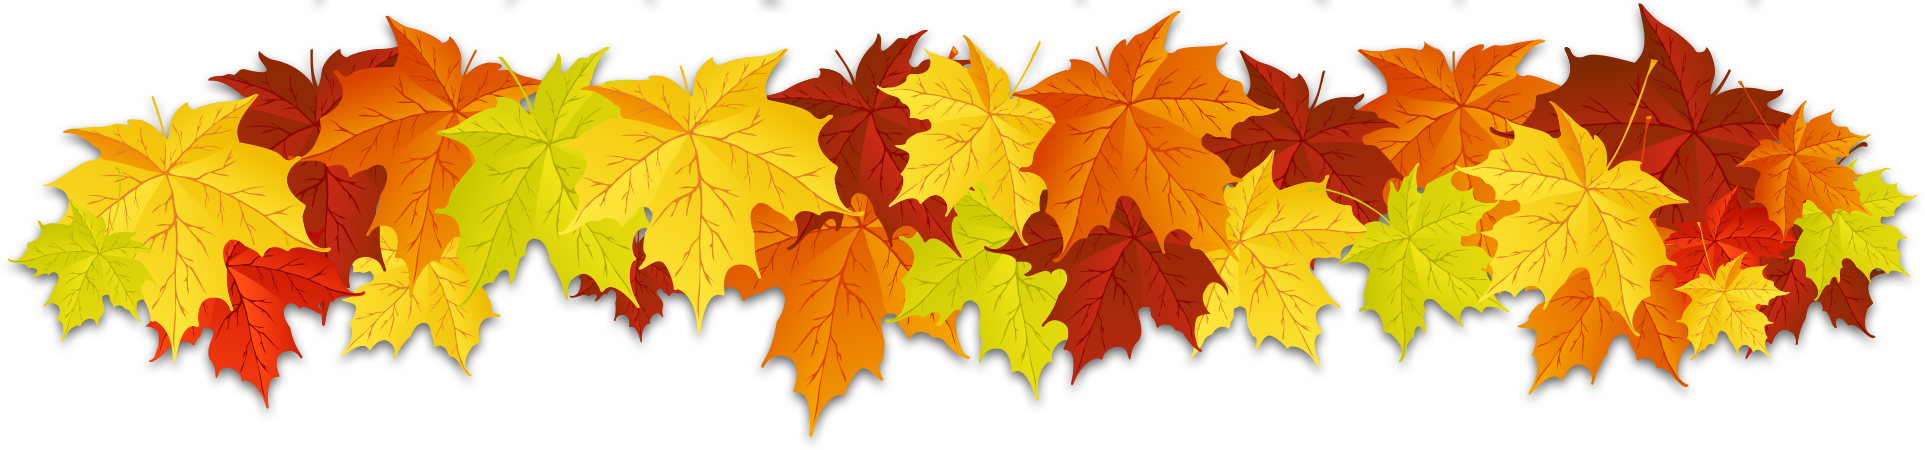 Leaves-top-border-2.png